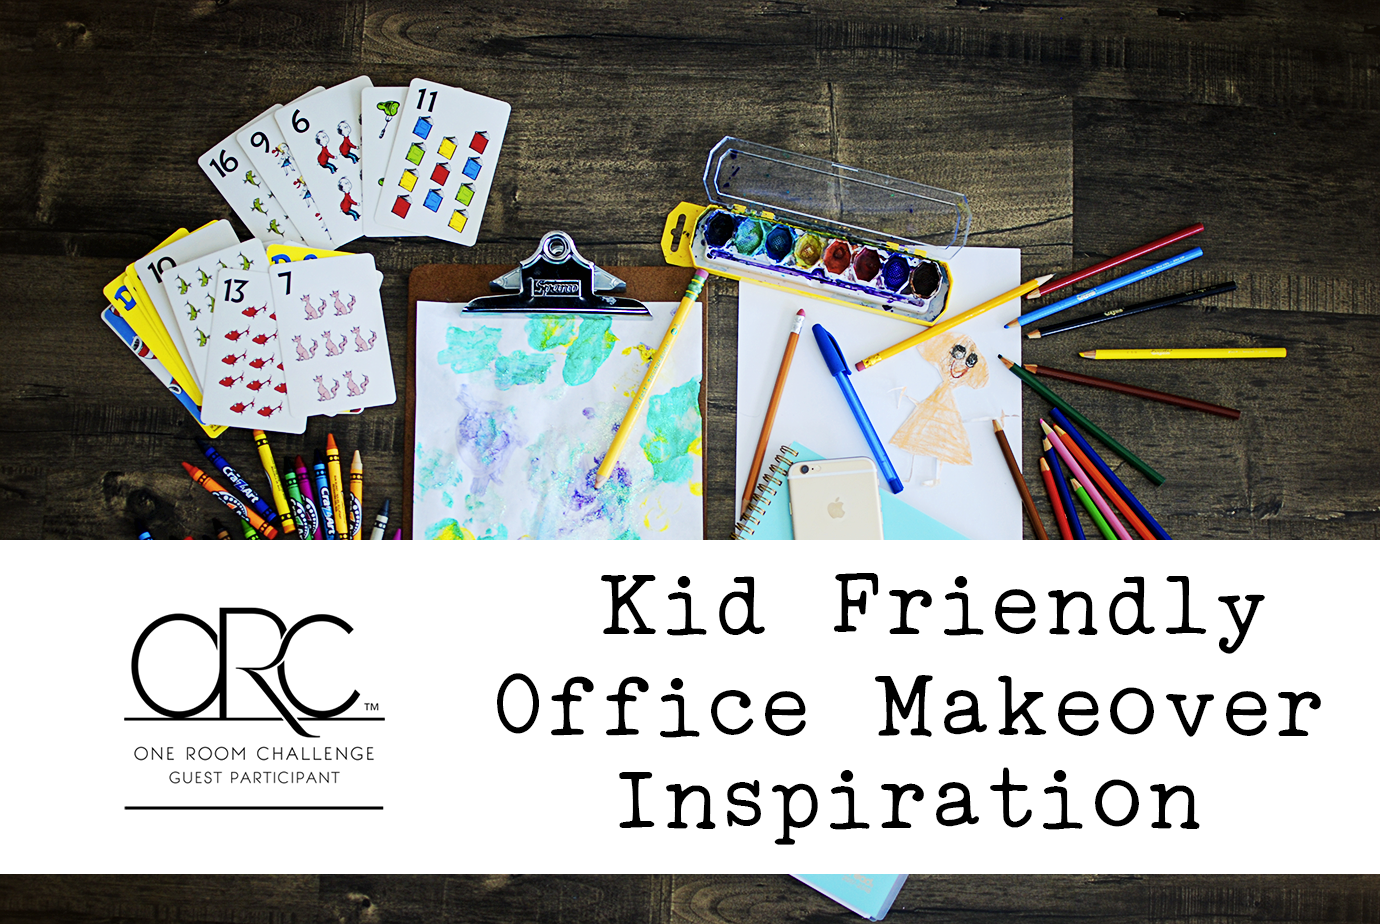 One Room Challenge Kid Friendly Office Makeover Inspiration - Crayons Planner Phone Watercolor Paints Flatlay